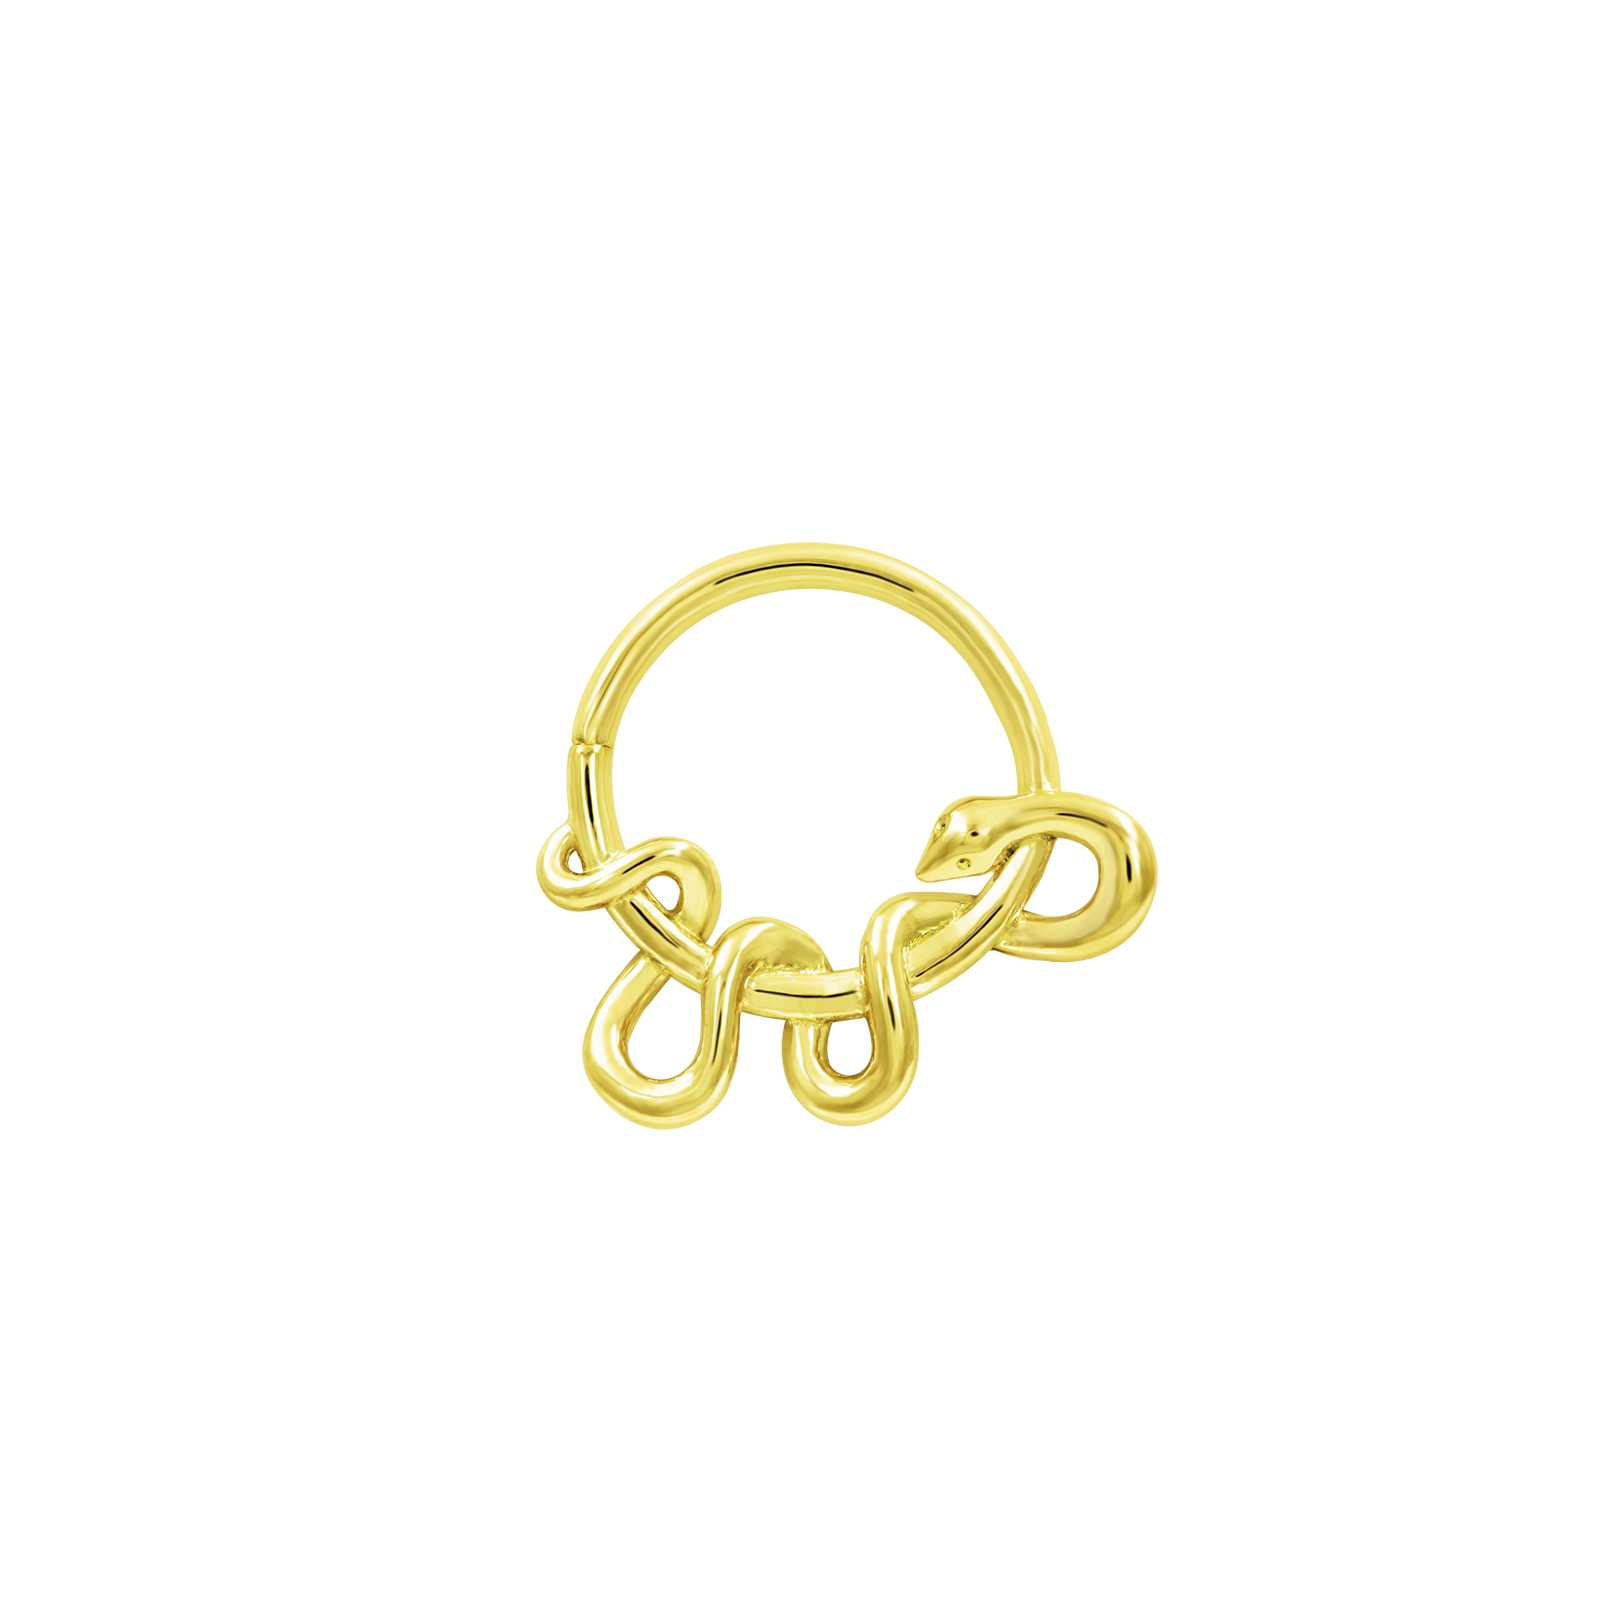 Kaa Seam Ring in Solid 14k Gold by Junipurr